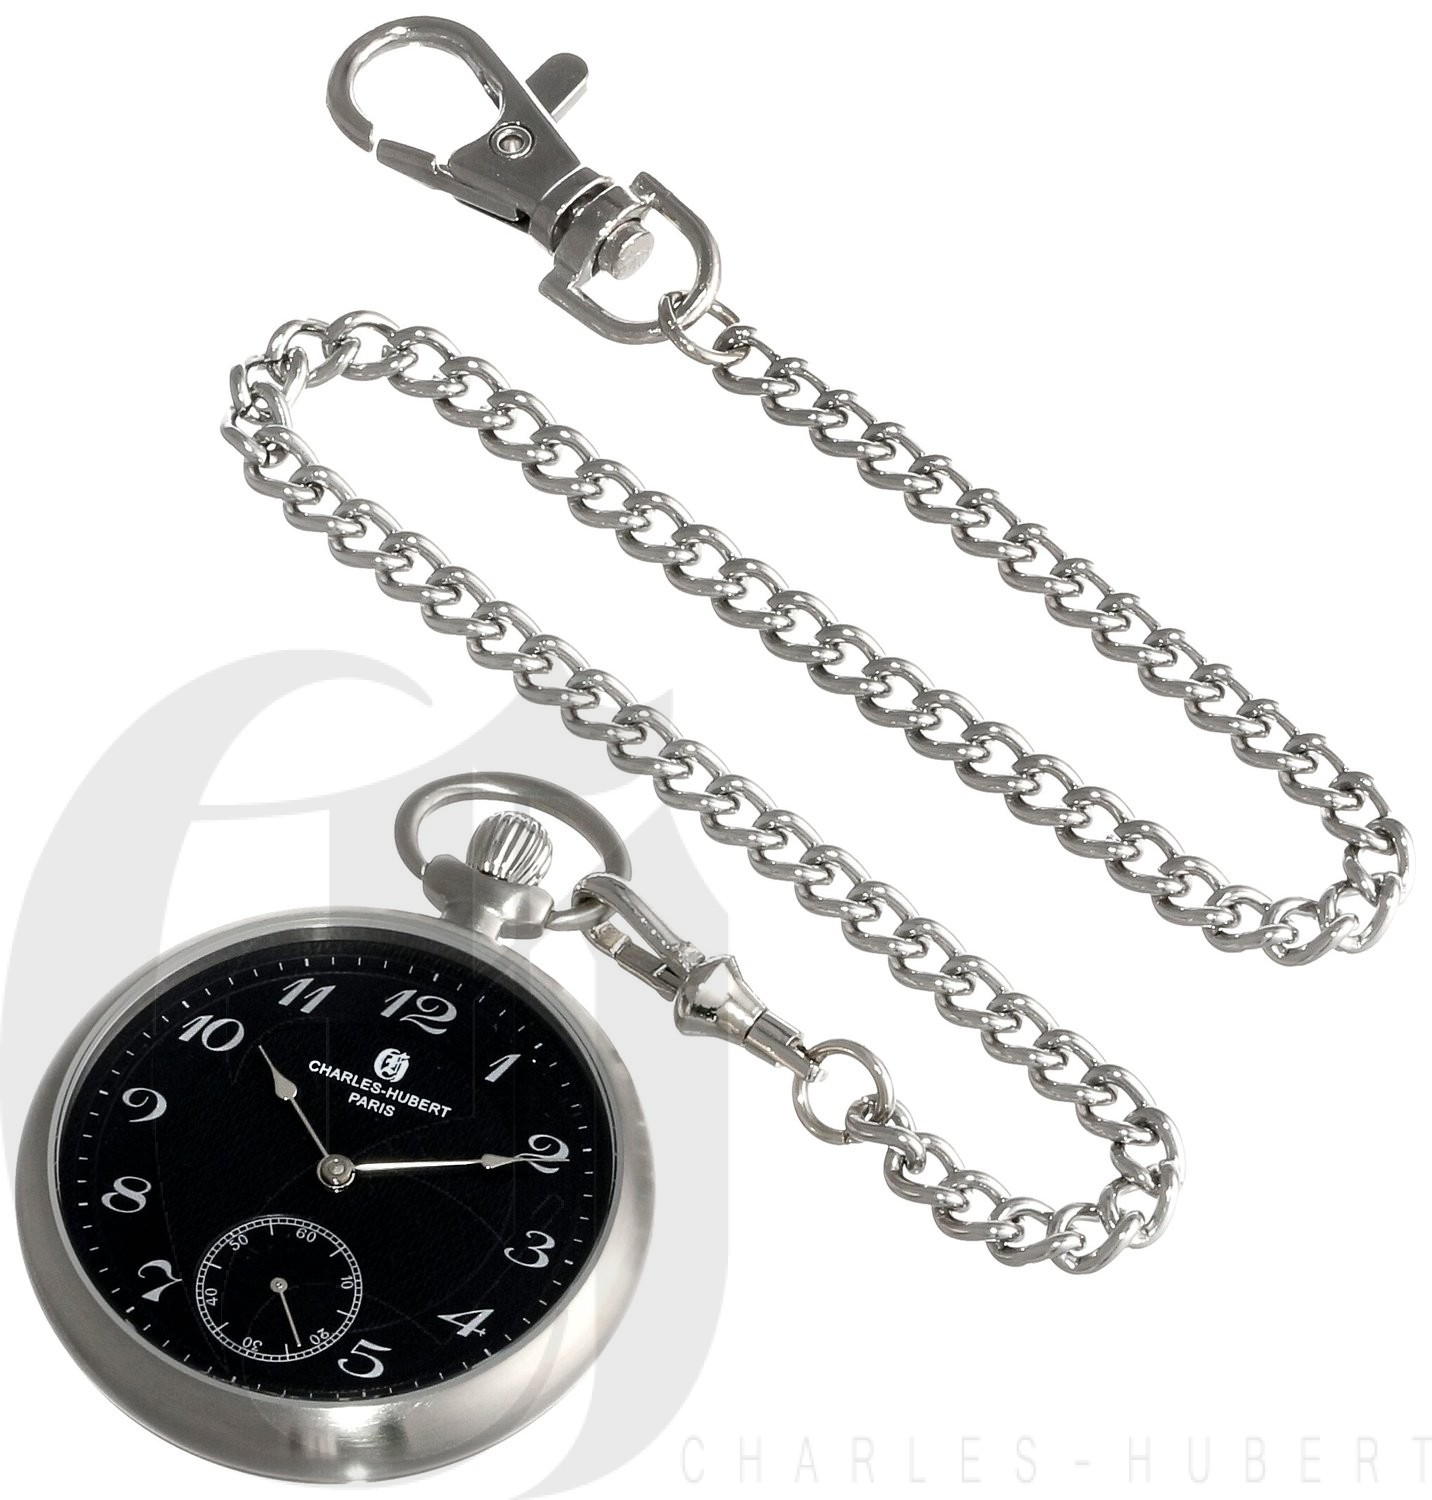 Charles-Hubert Paris Stainless Steel Open Face Mechanical Pocket Watch